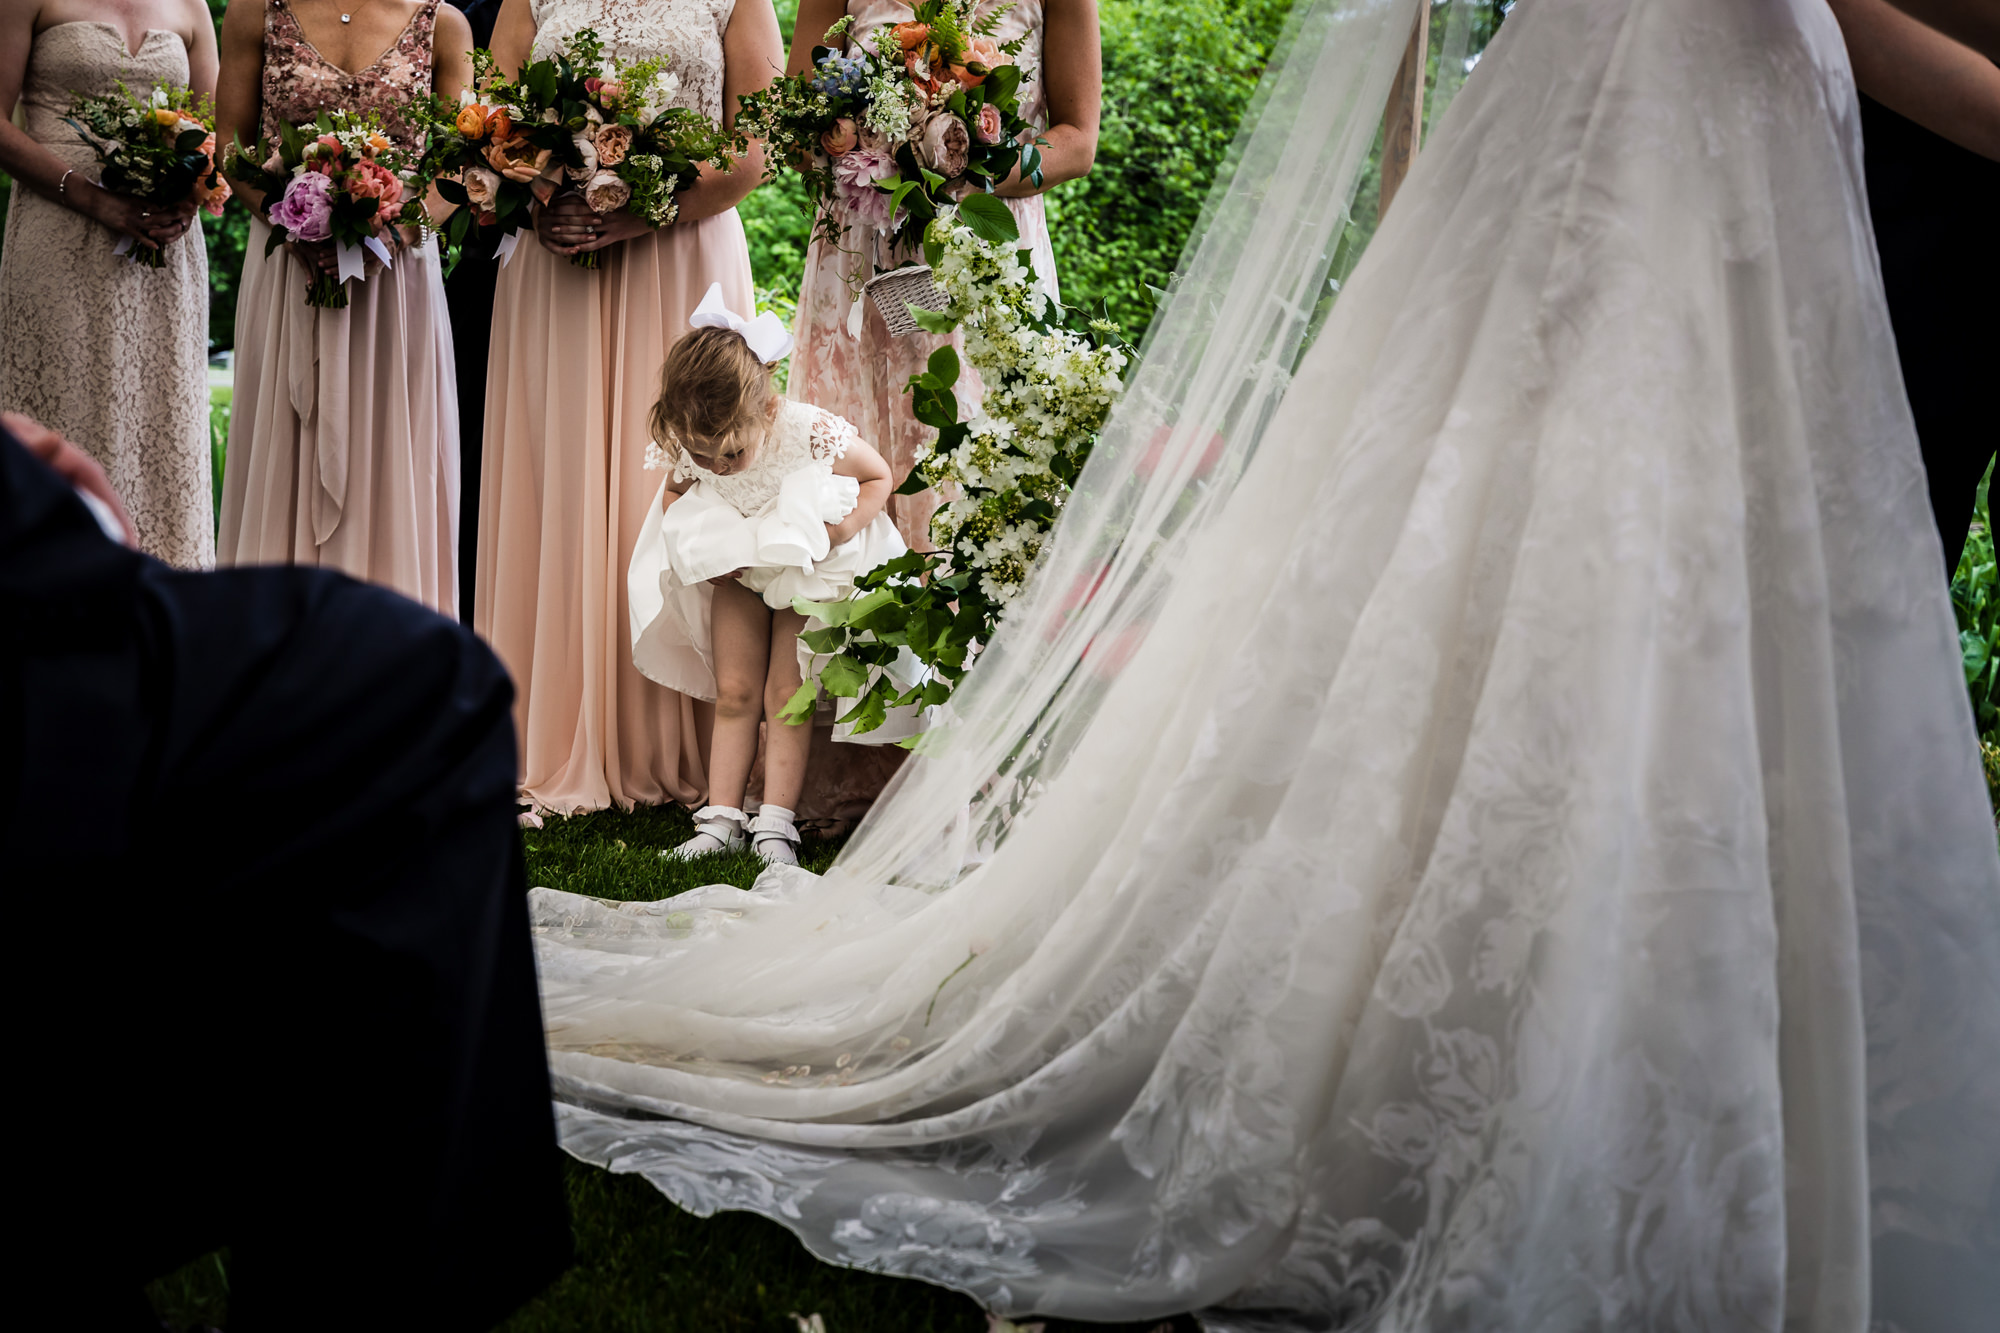 Flower girl looking at her shoes during ceremony - photo by JAG Studios